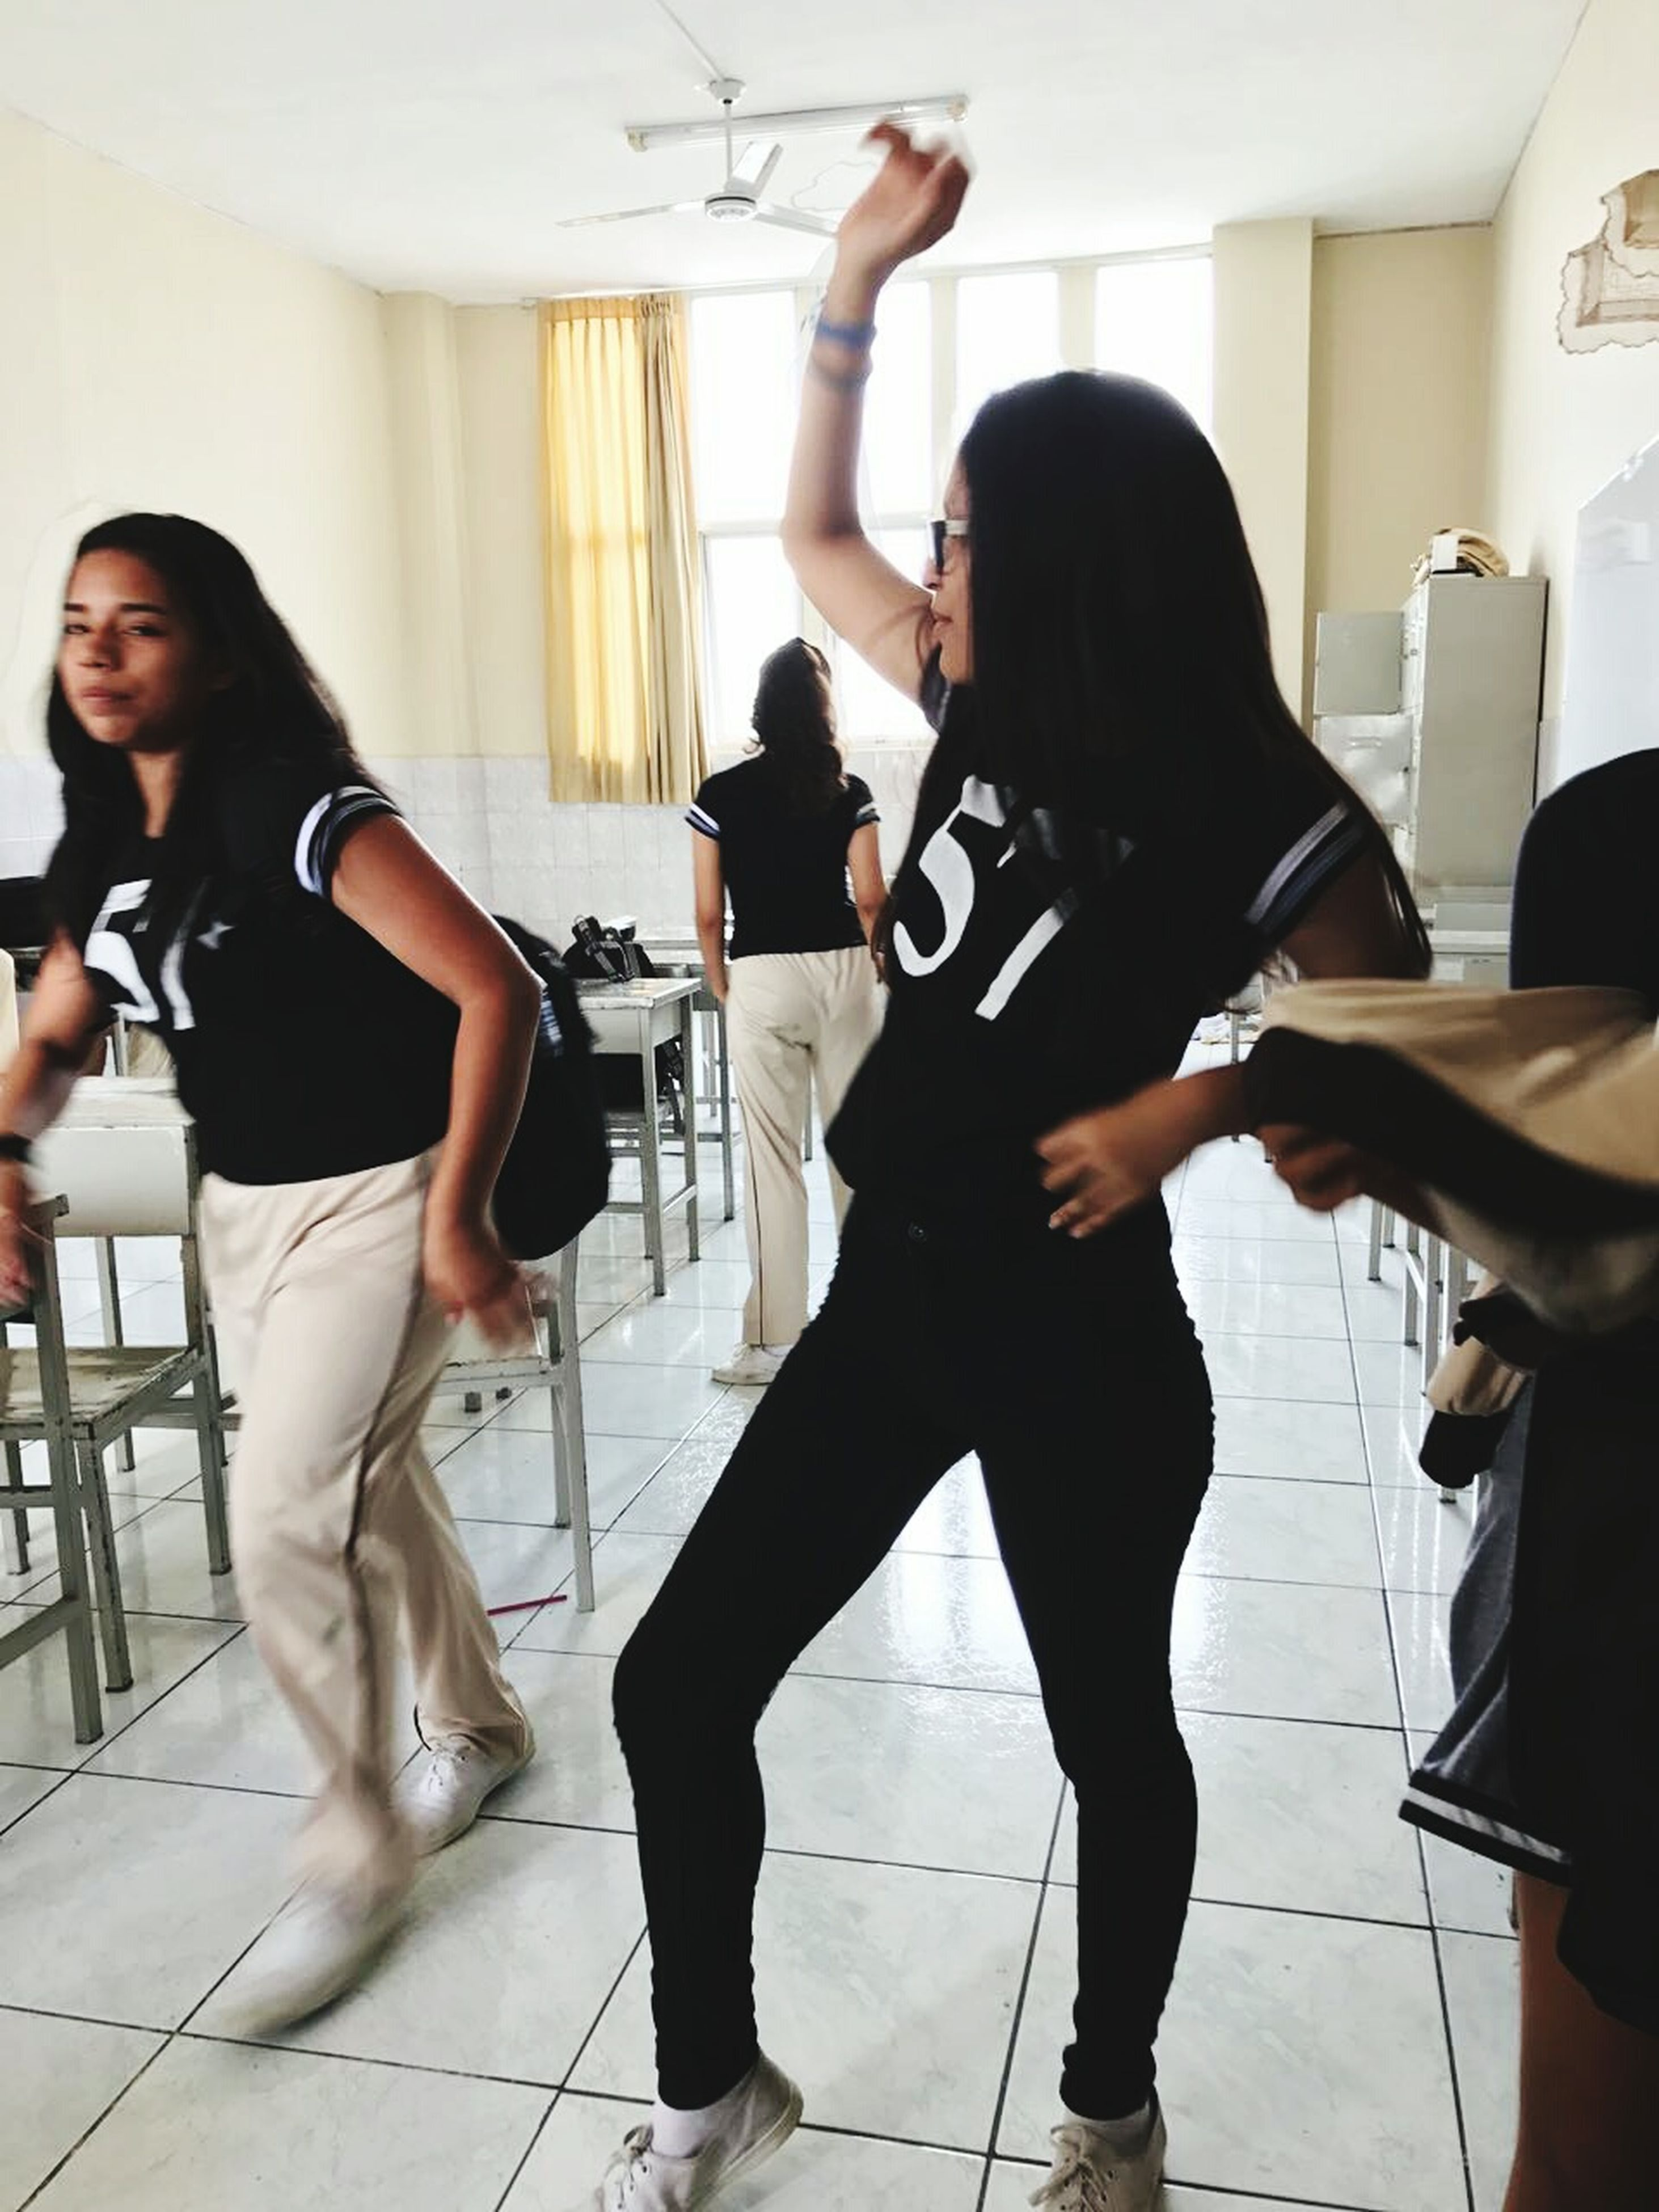 practicing, music, full length, indoors, skill, standing, expertise, performance, only women, leisure activity, lifestyles, playing, people, adults only, musician, musical instrument, violin, bass guitar, performing arts event, adult, day